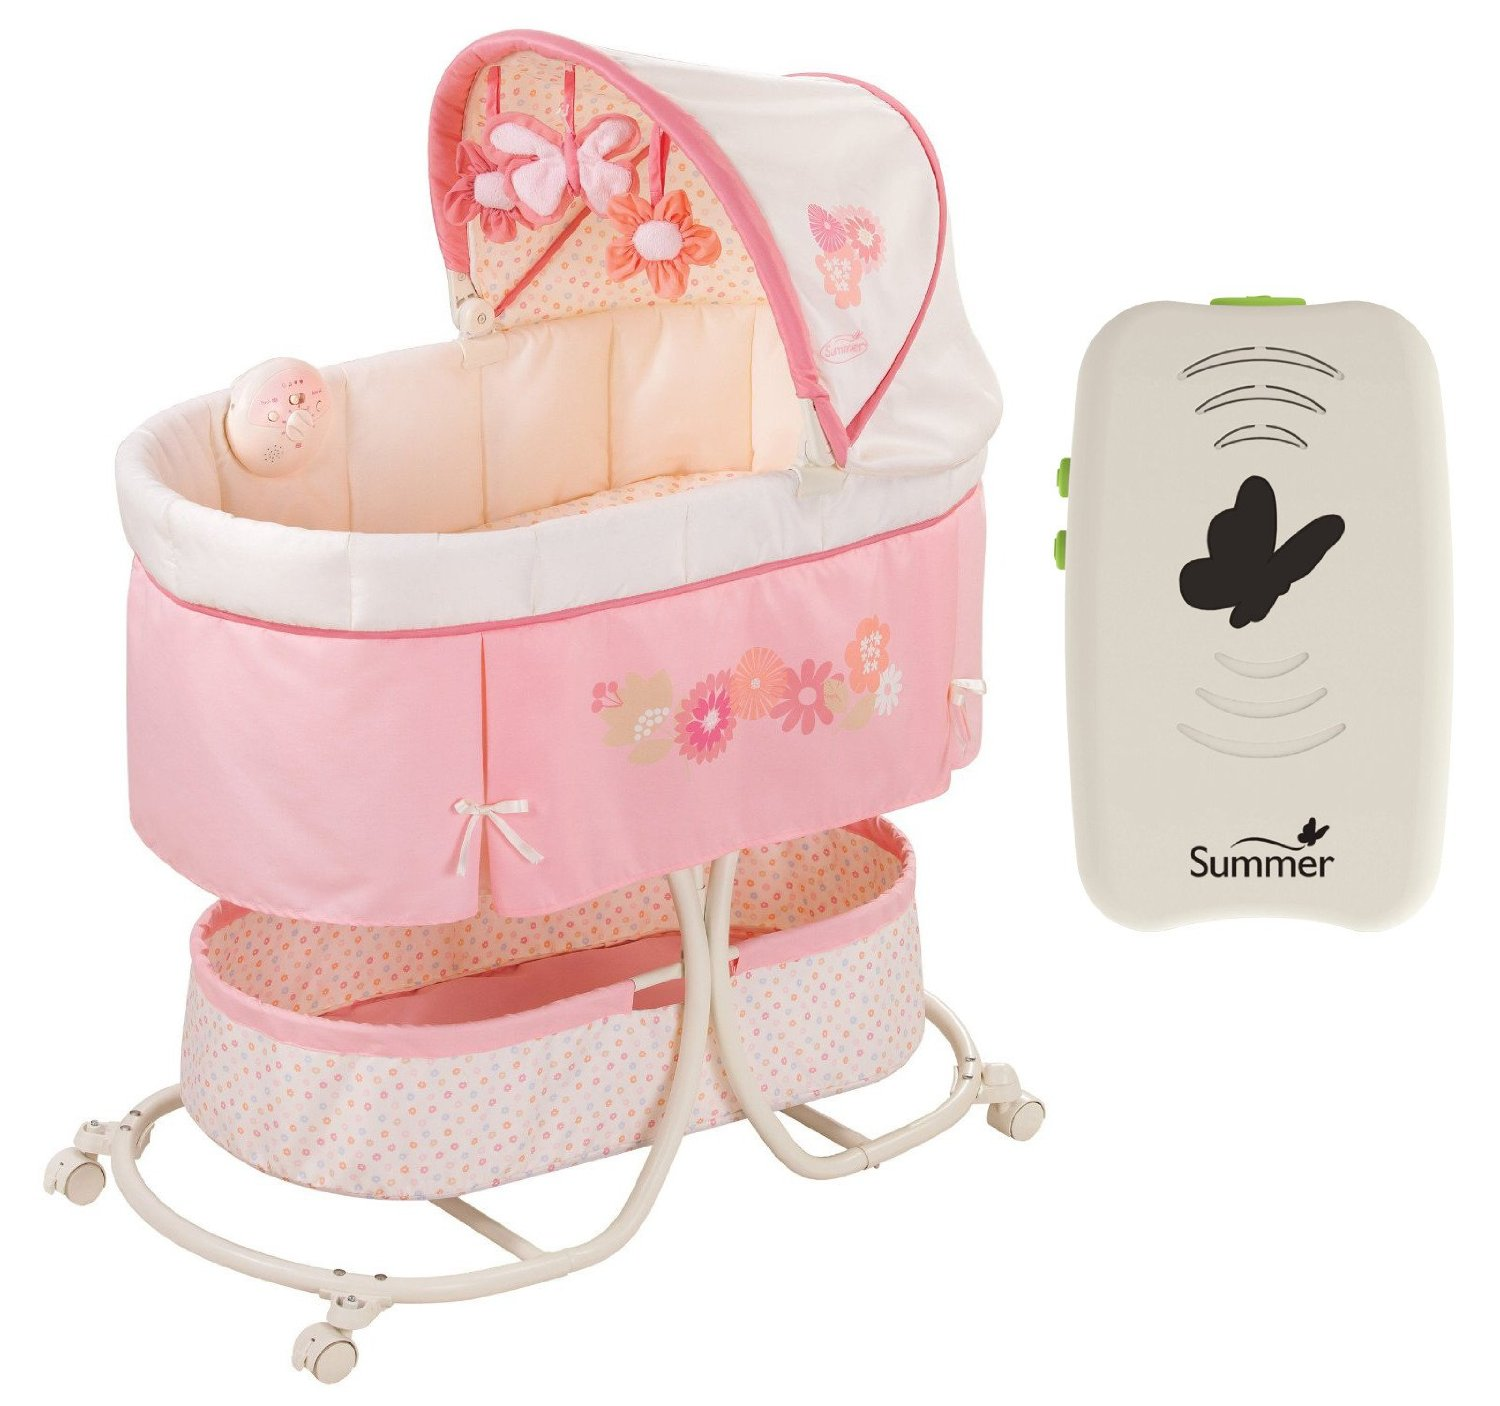 Summer Infant Soothe & Sleep Bassinet with Portable Soother